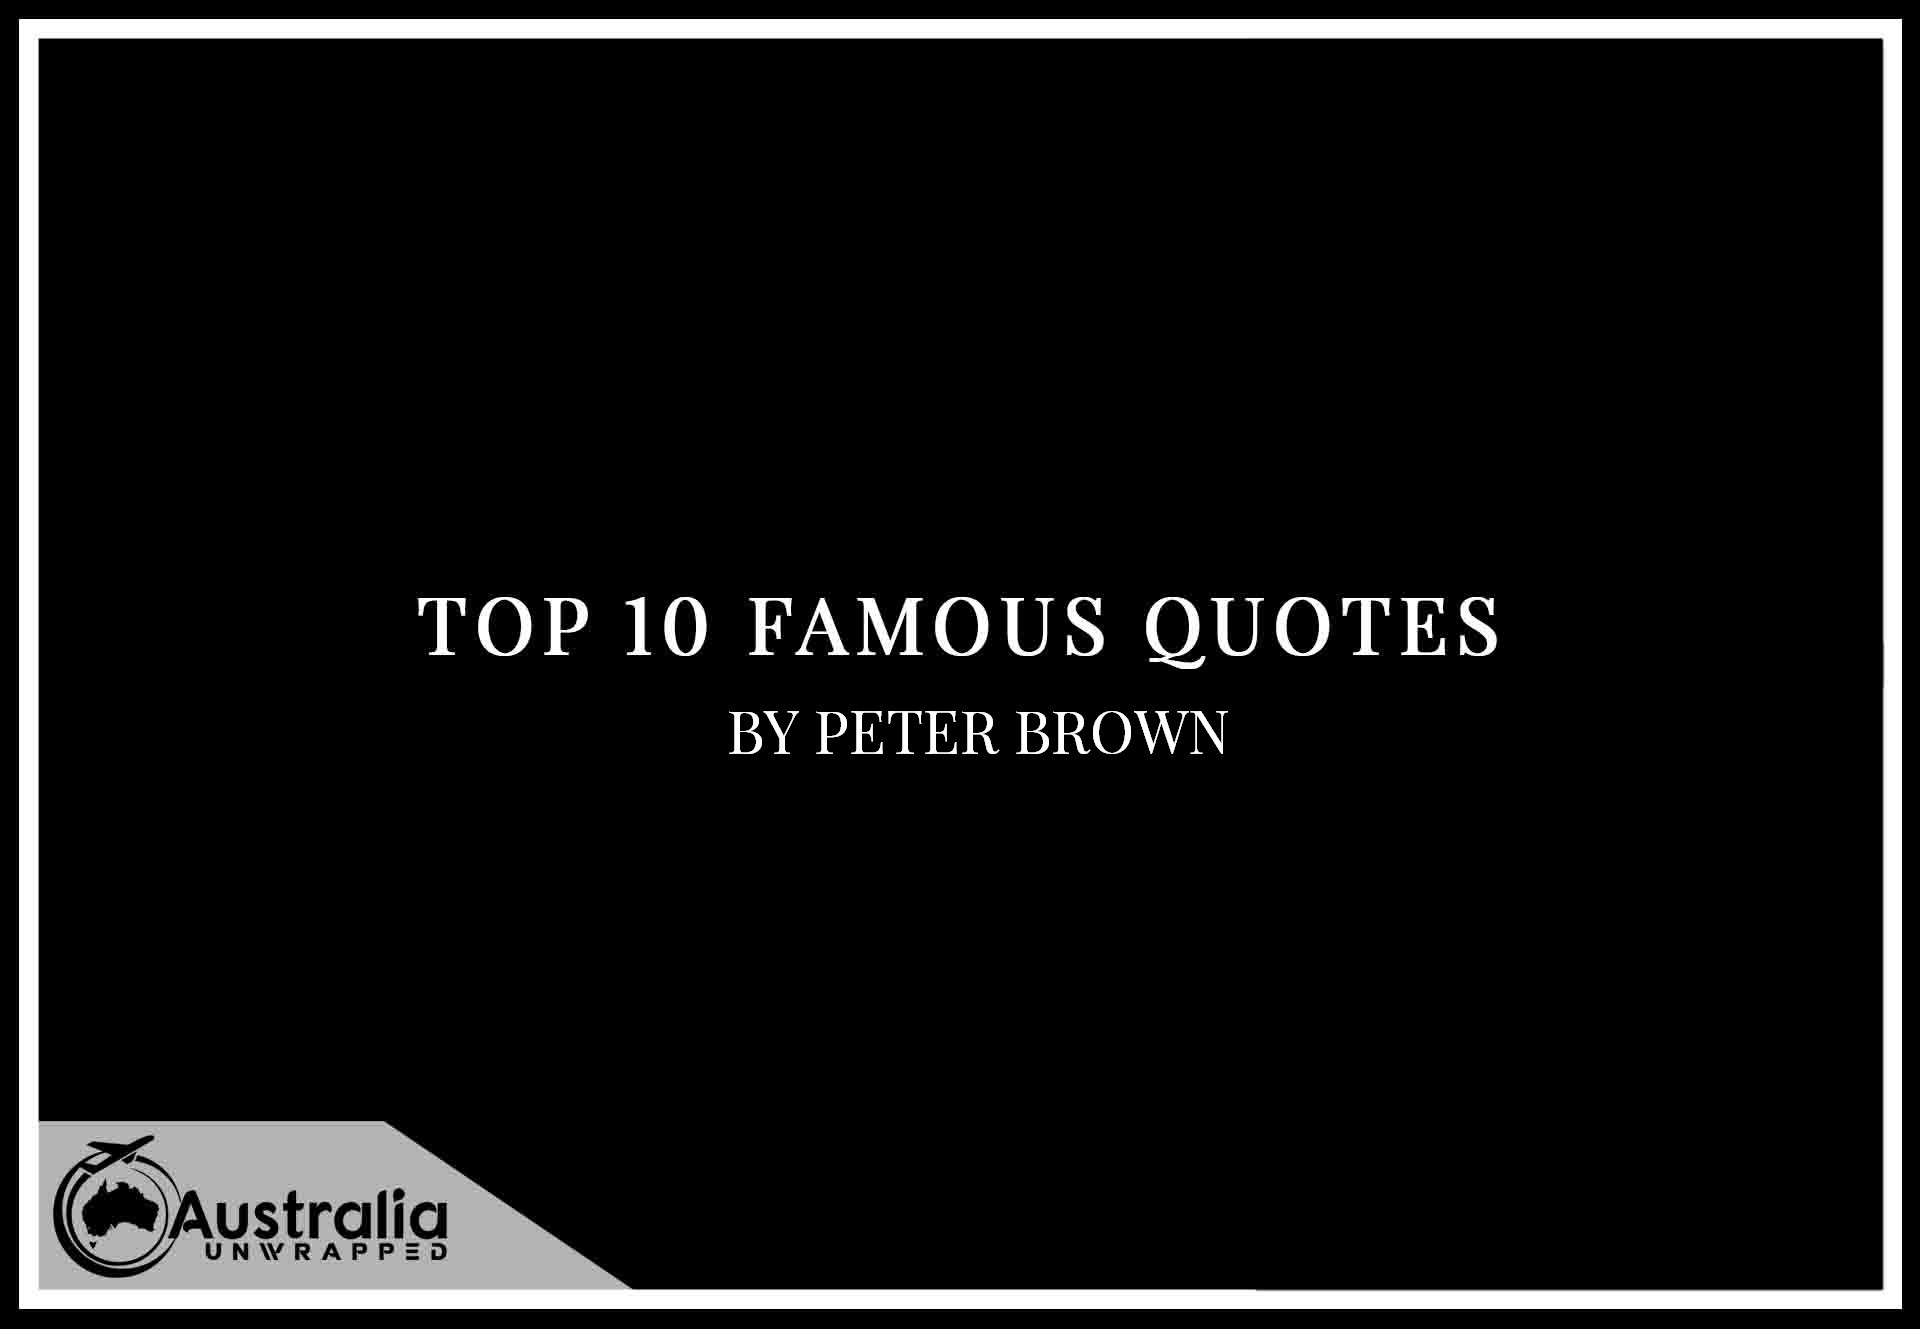 Top 10 Famous Quotes by Author Peter Brown